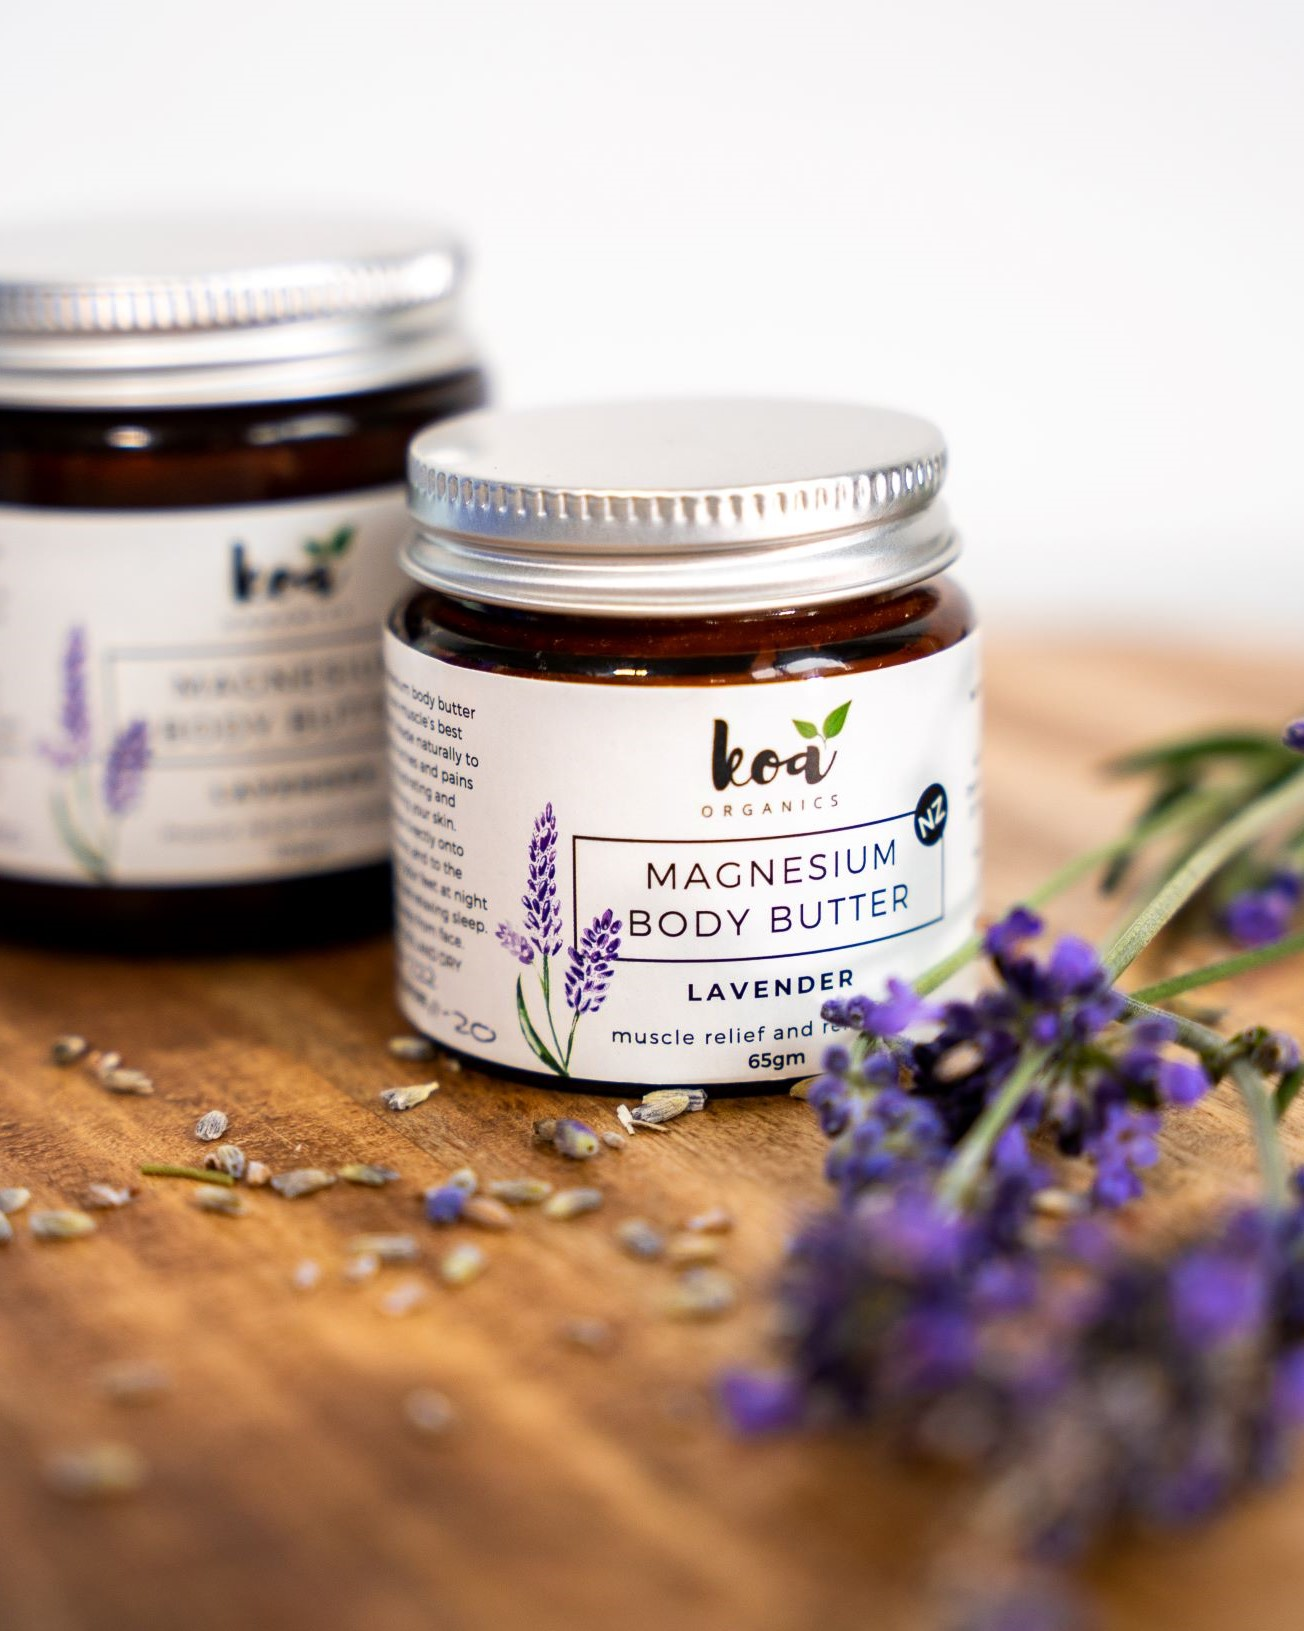 Magnesium Body Butter with Lavender via @chooicenz